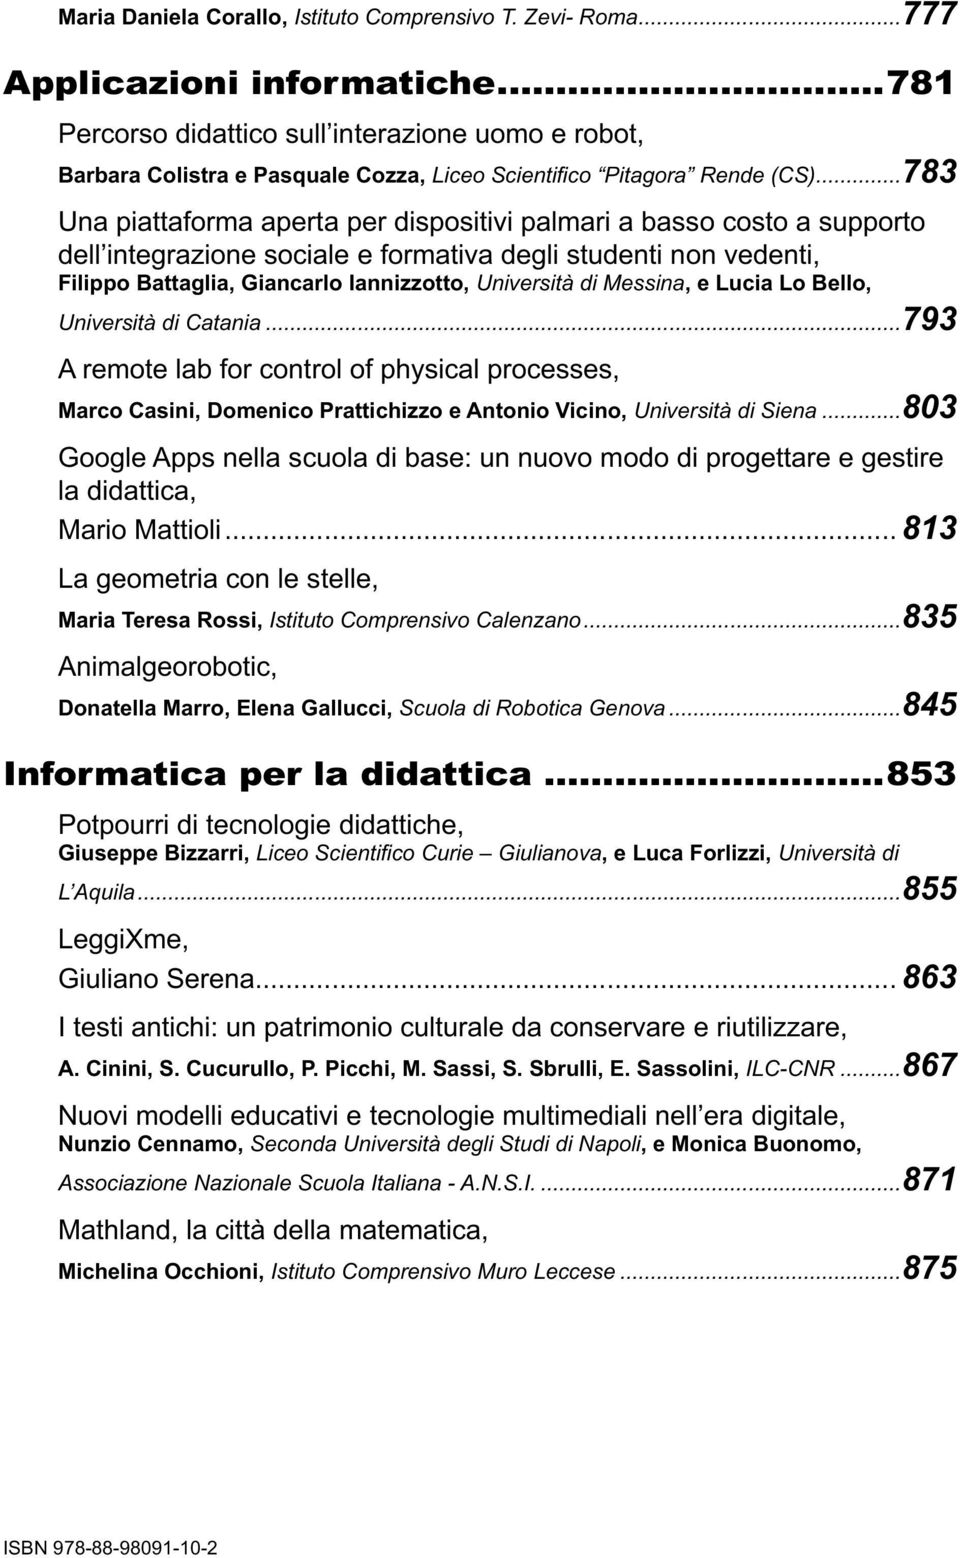 Messina, e Lucia Lo Bello, Università di Catania...793 A remote lab for control of physical processes, Marco Casini, Domenico Prattichizzo e Antonio Vicino, Università di Siena.